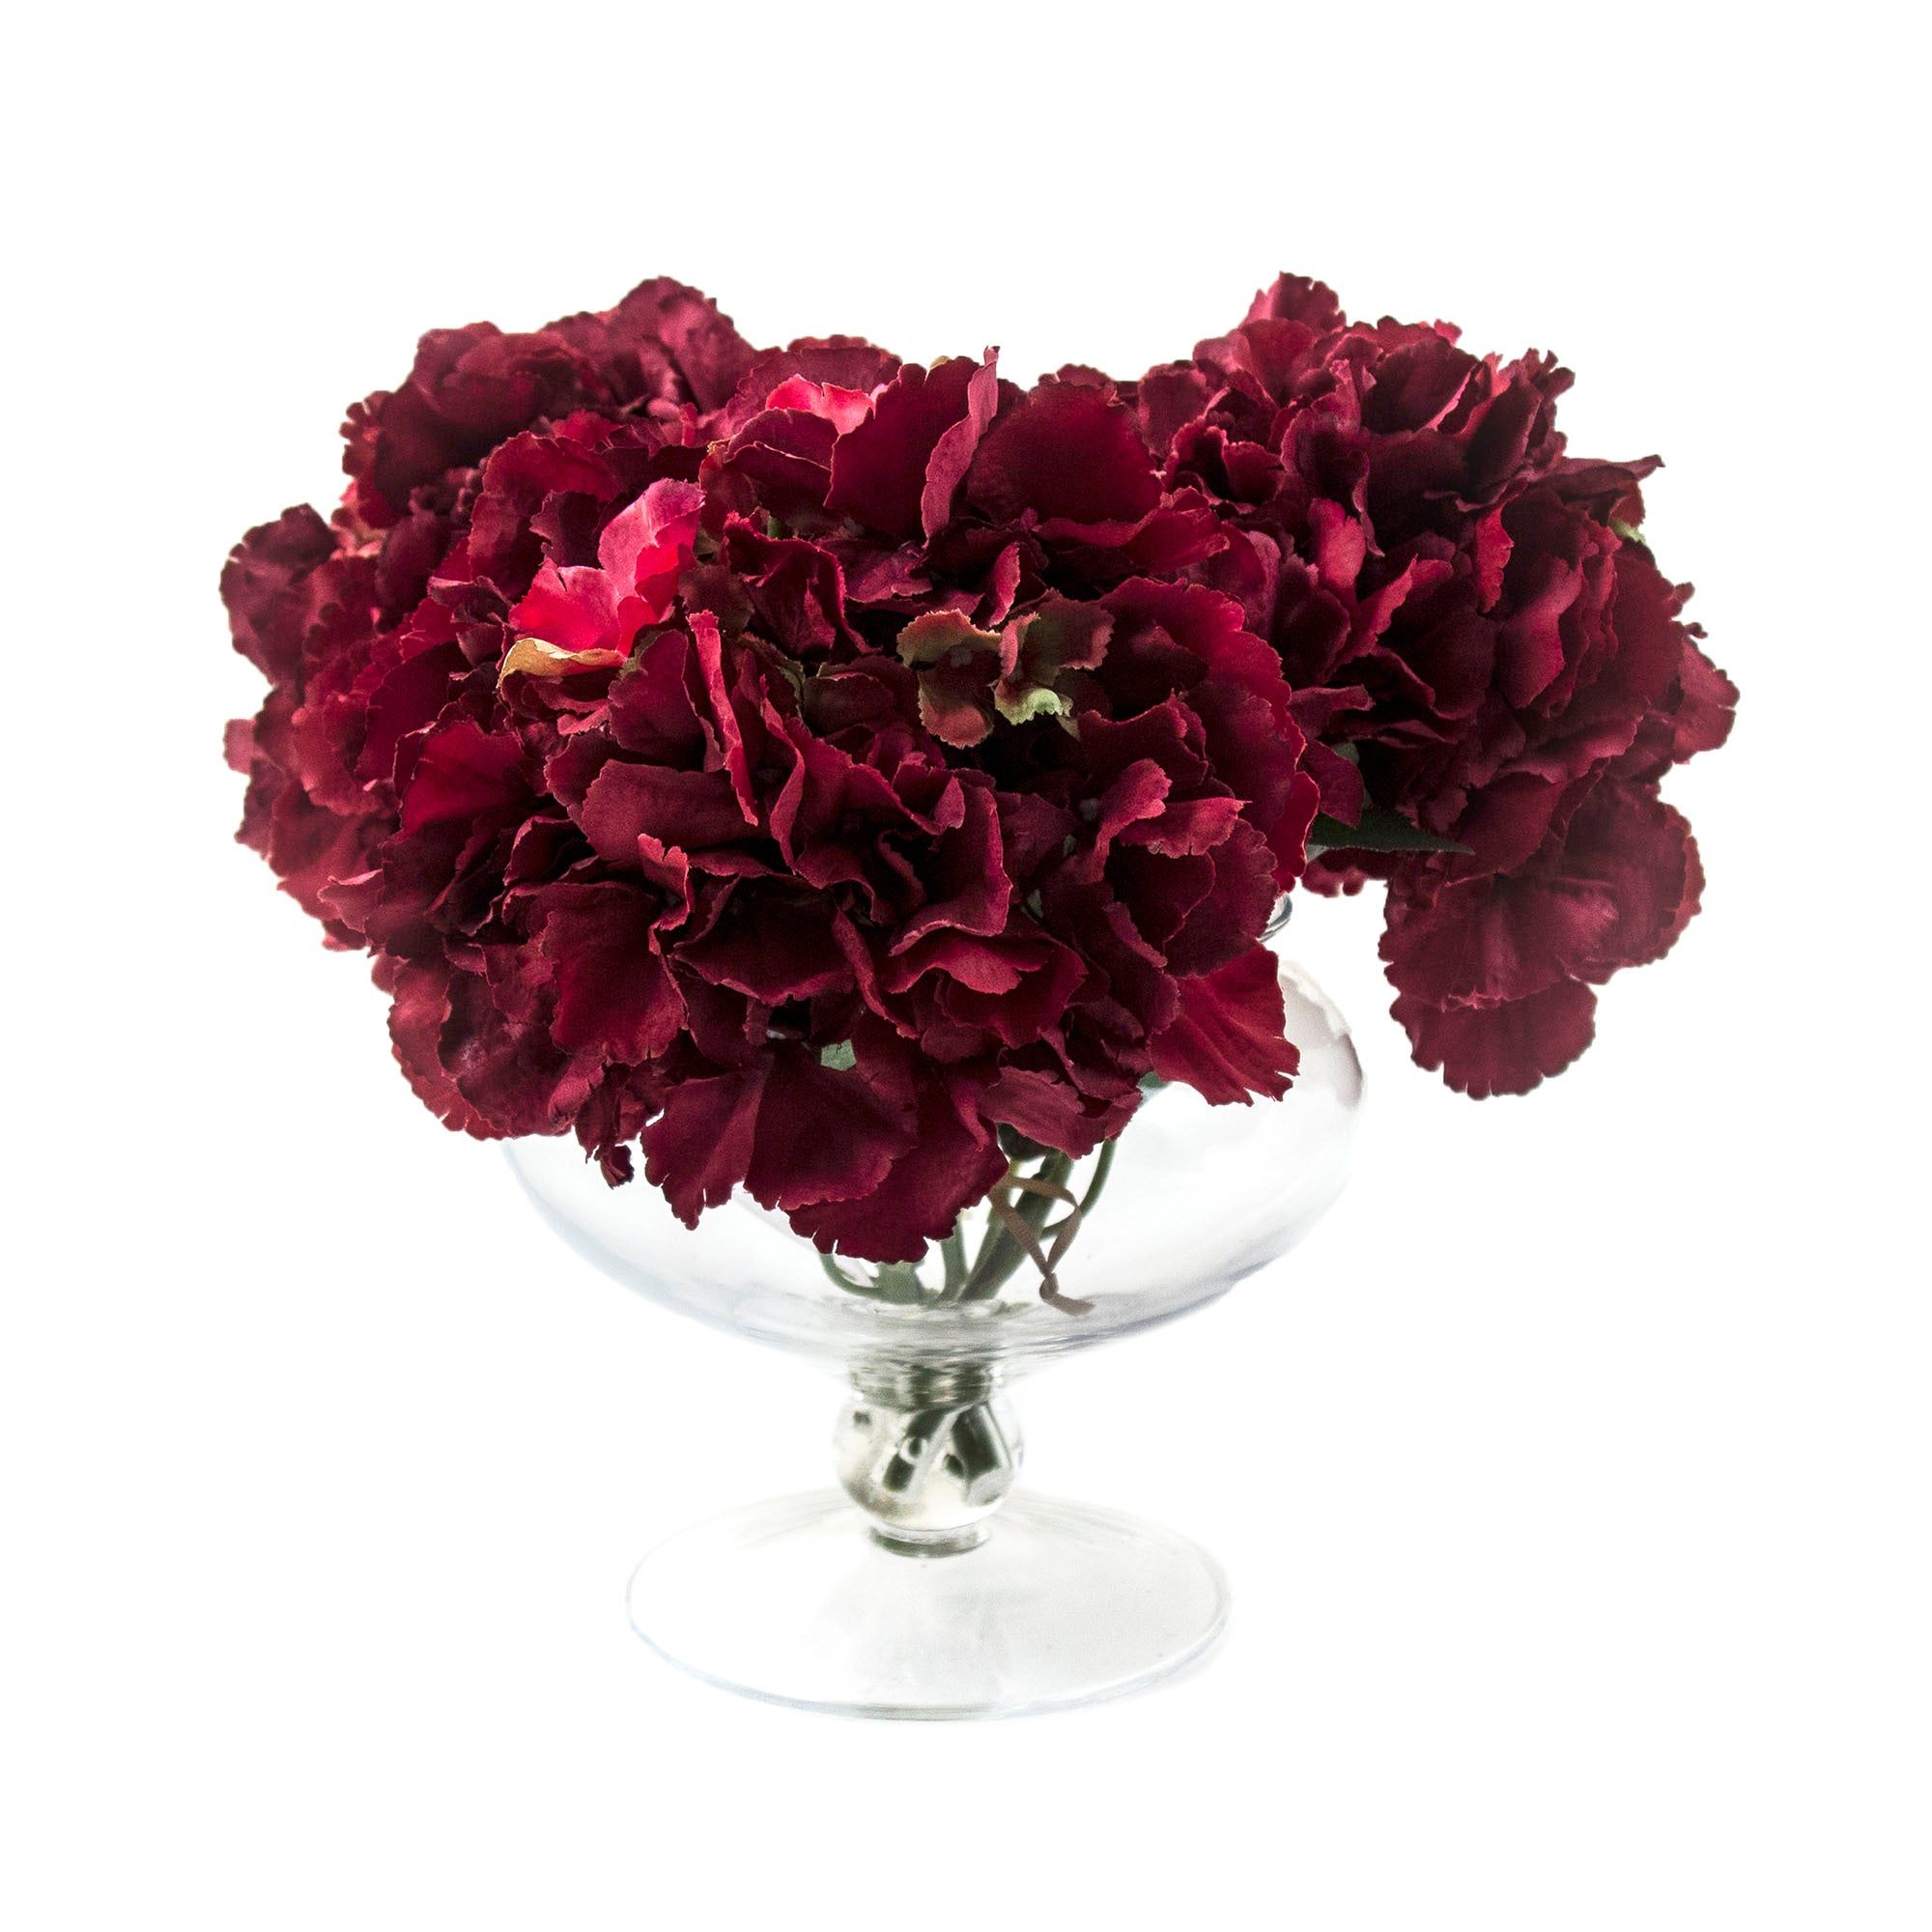 Image of Dorma Hydrangeas in Footed Vase Red